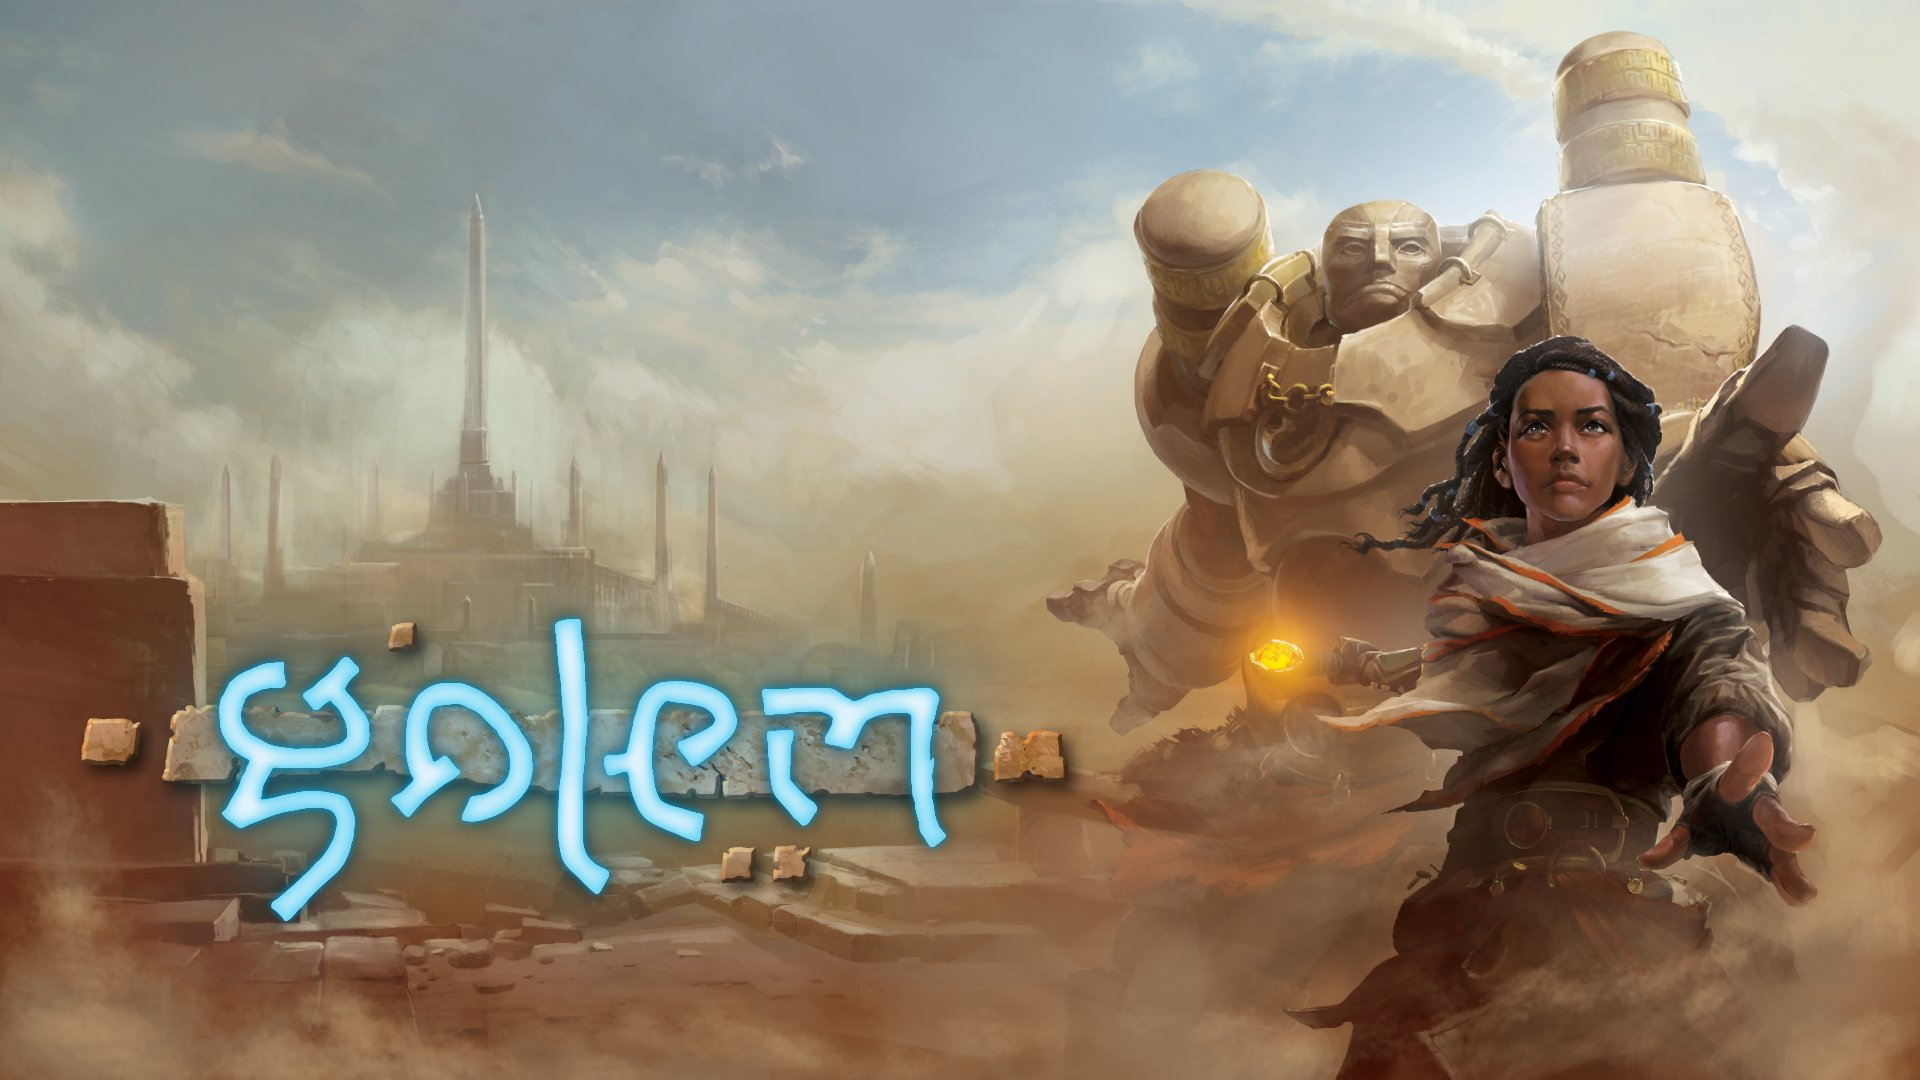 We're checking out brand new gameplay from Golem, coming soon to PS VR. Watch now: https://t.co/6WGSKH0BS1 https://t.co/dpe1ydbYH4